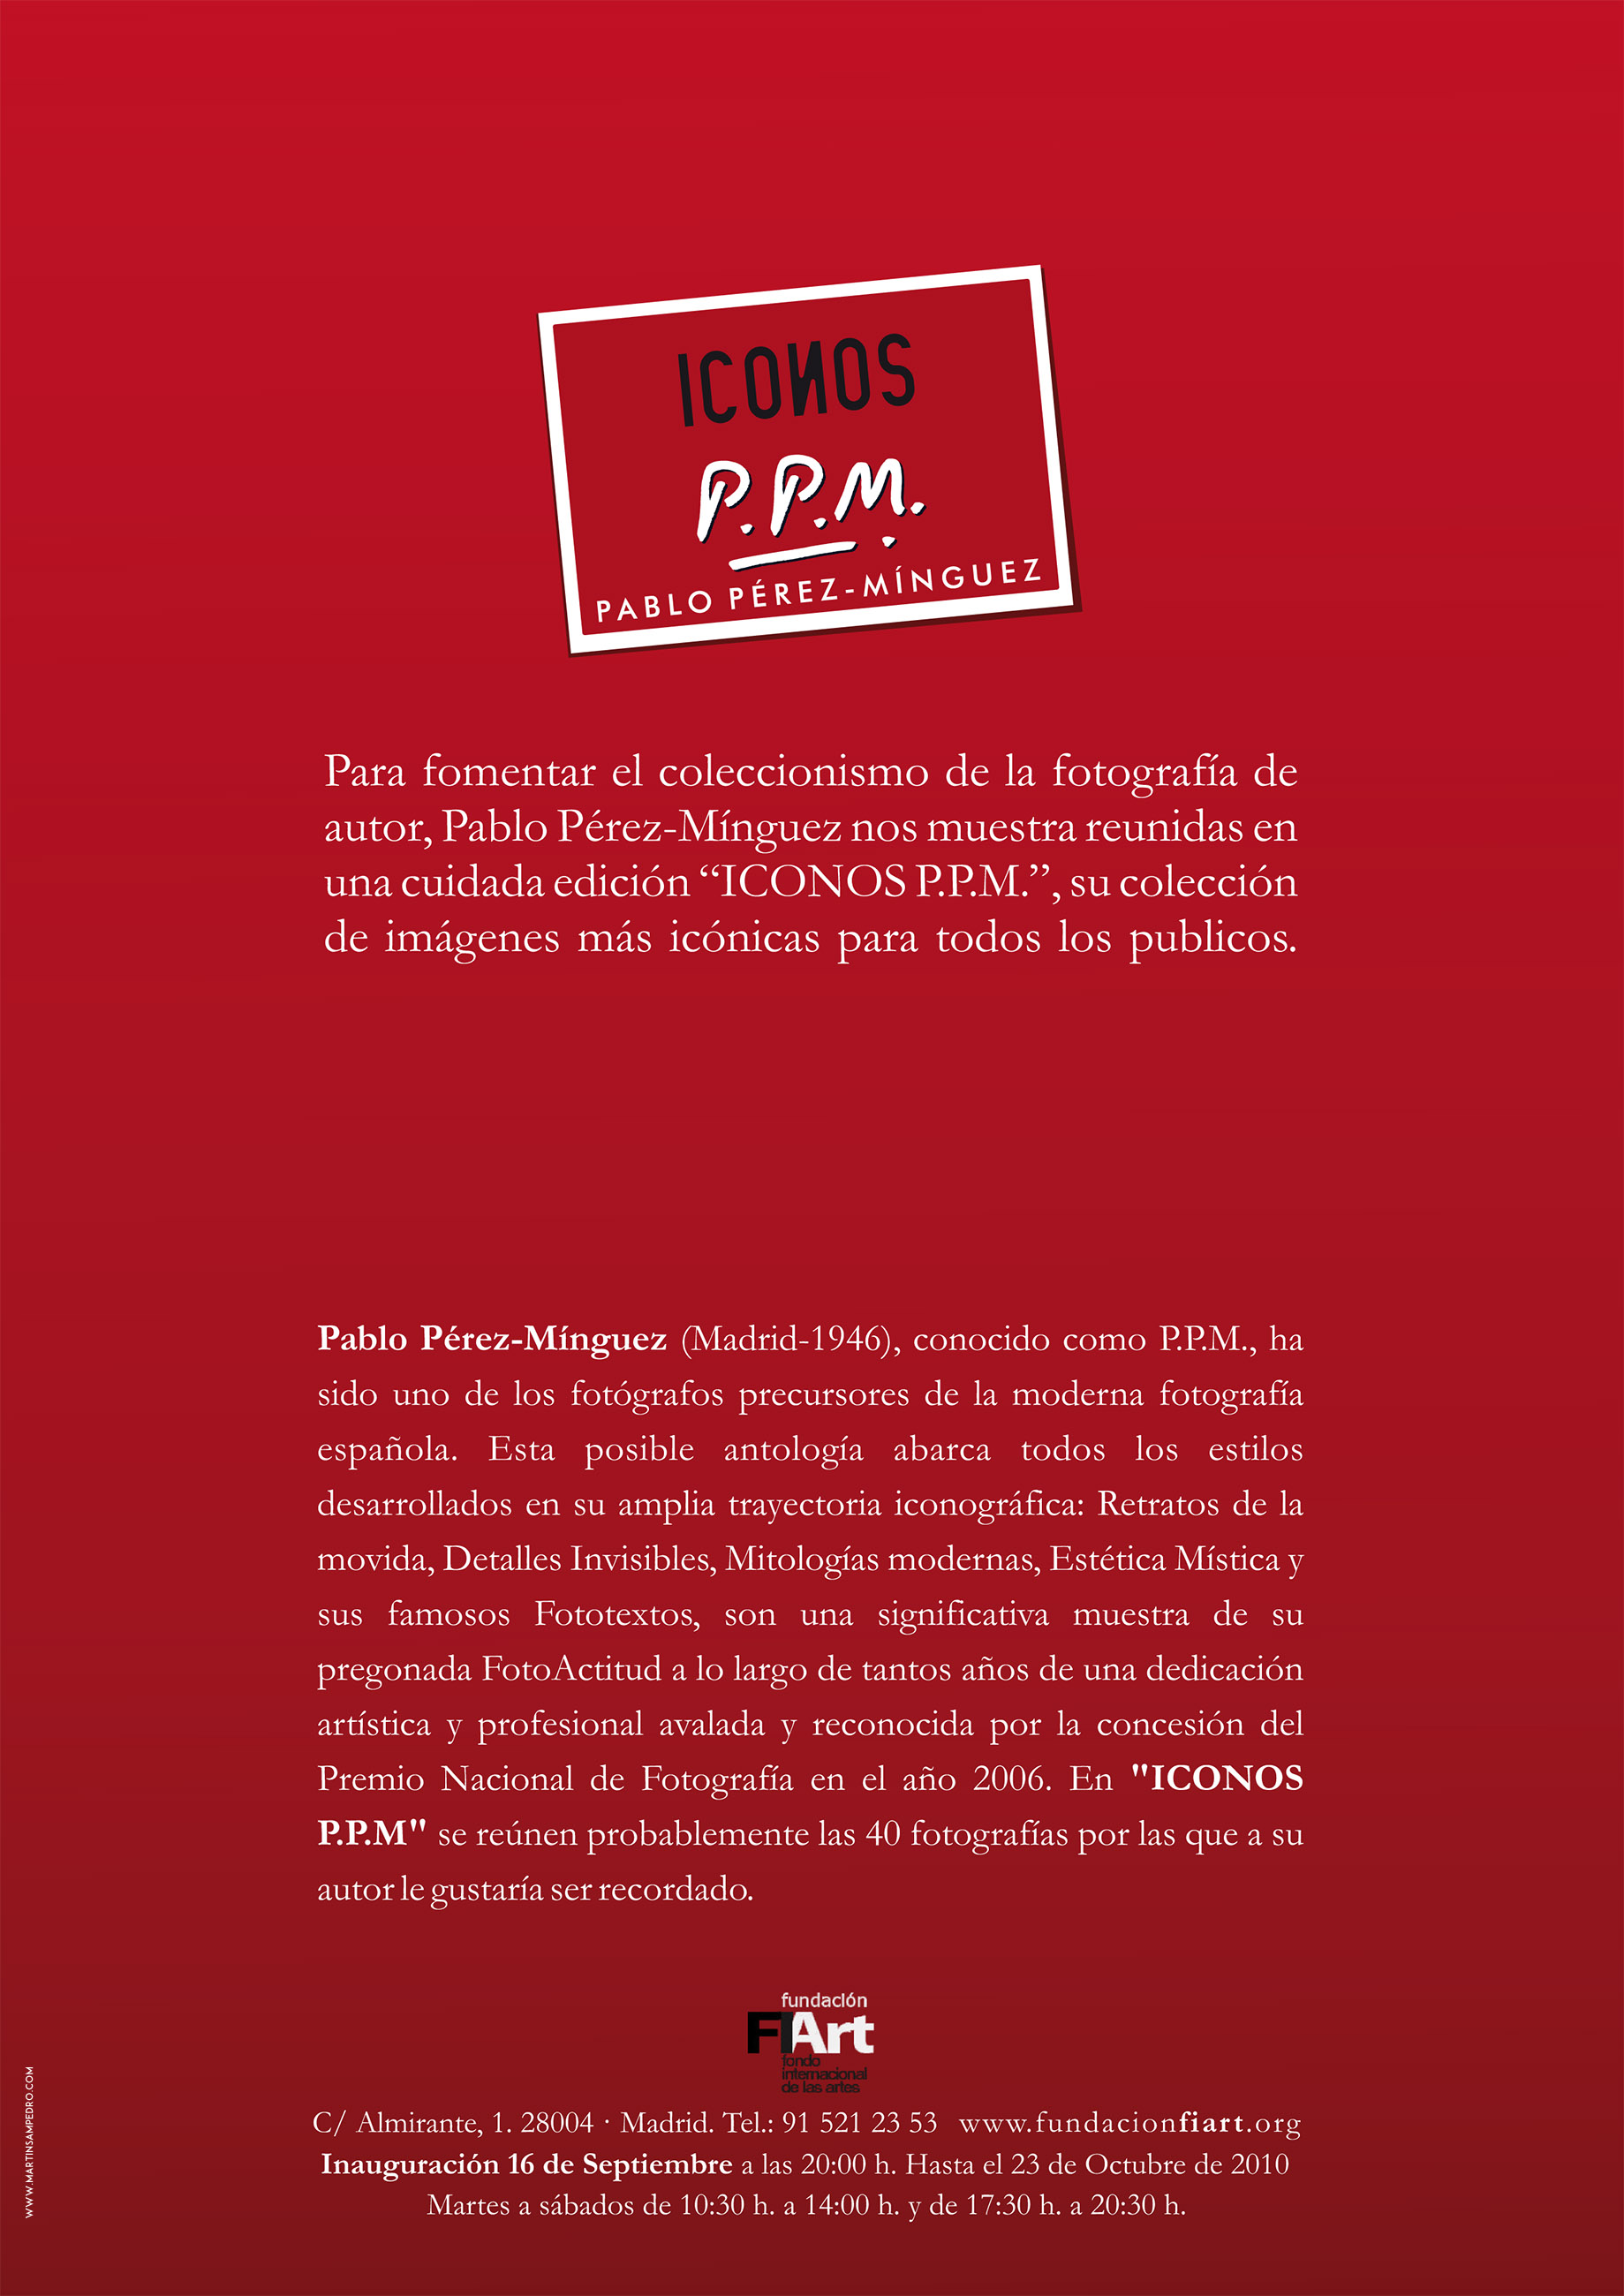 PPM ICONOS TEXTO EXPO.cdr